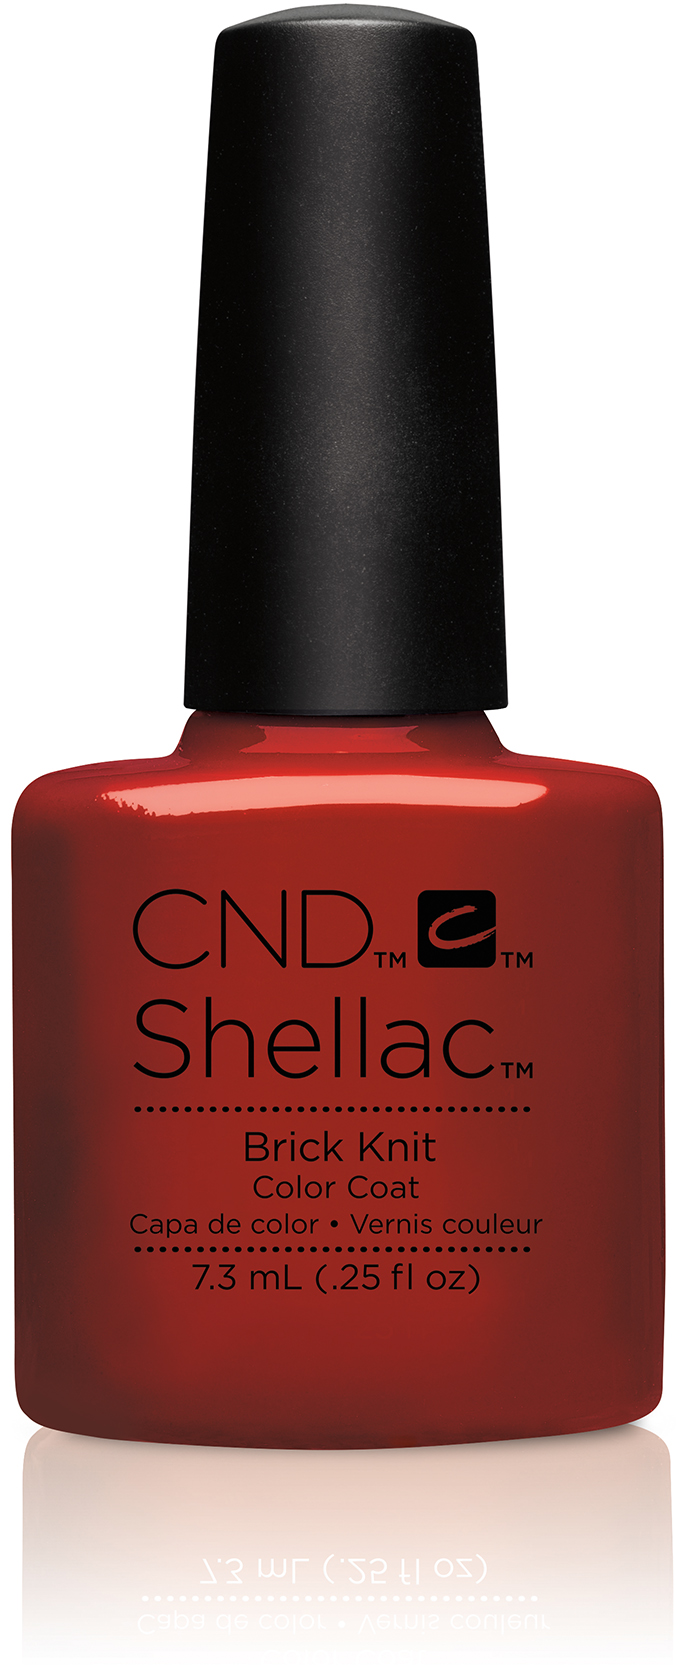 CND Shellac Craft Culture Collection Brick Knit